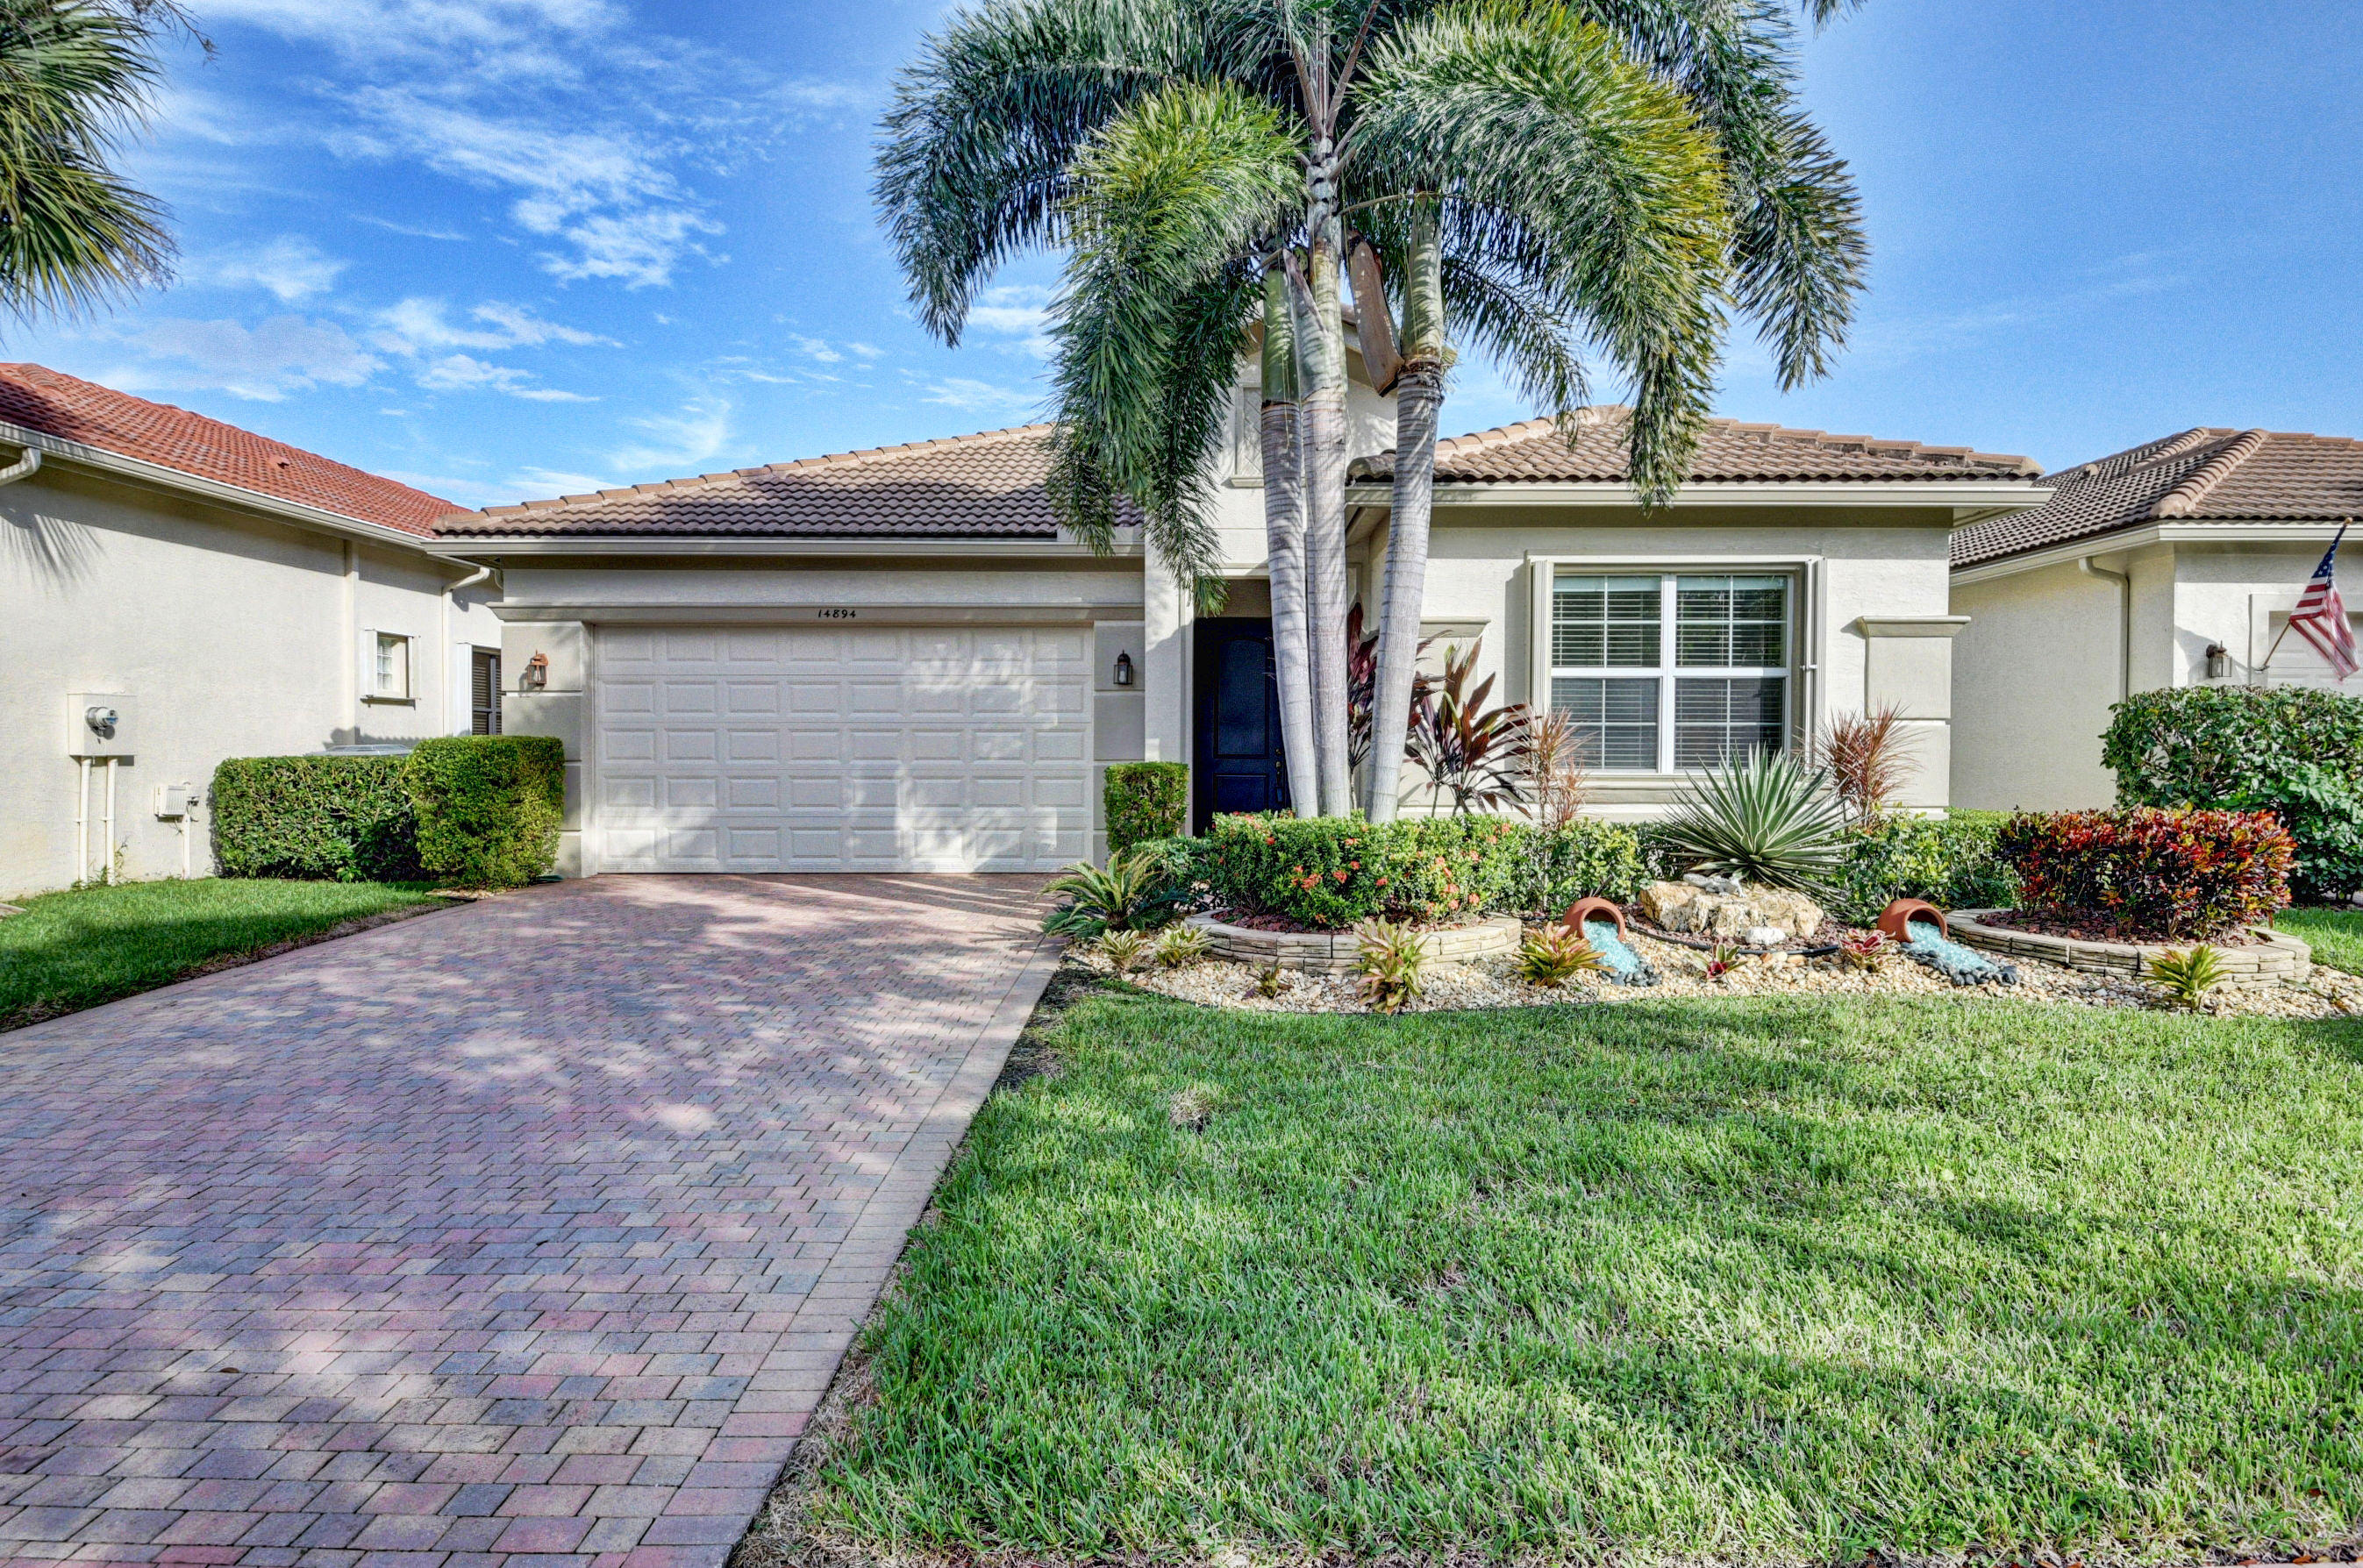 FOUR SEASONS home 14894 Jetty Lane Delray Beach FL 33446